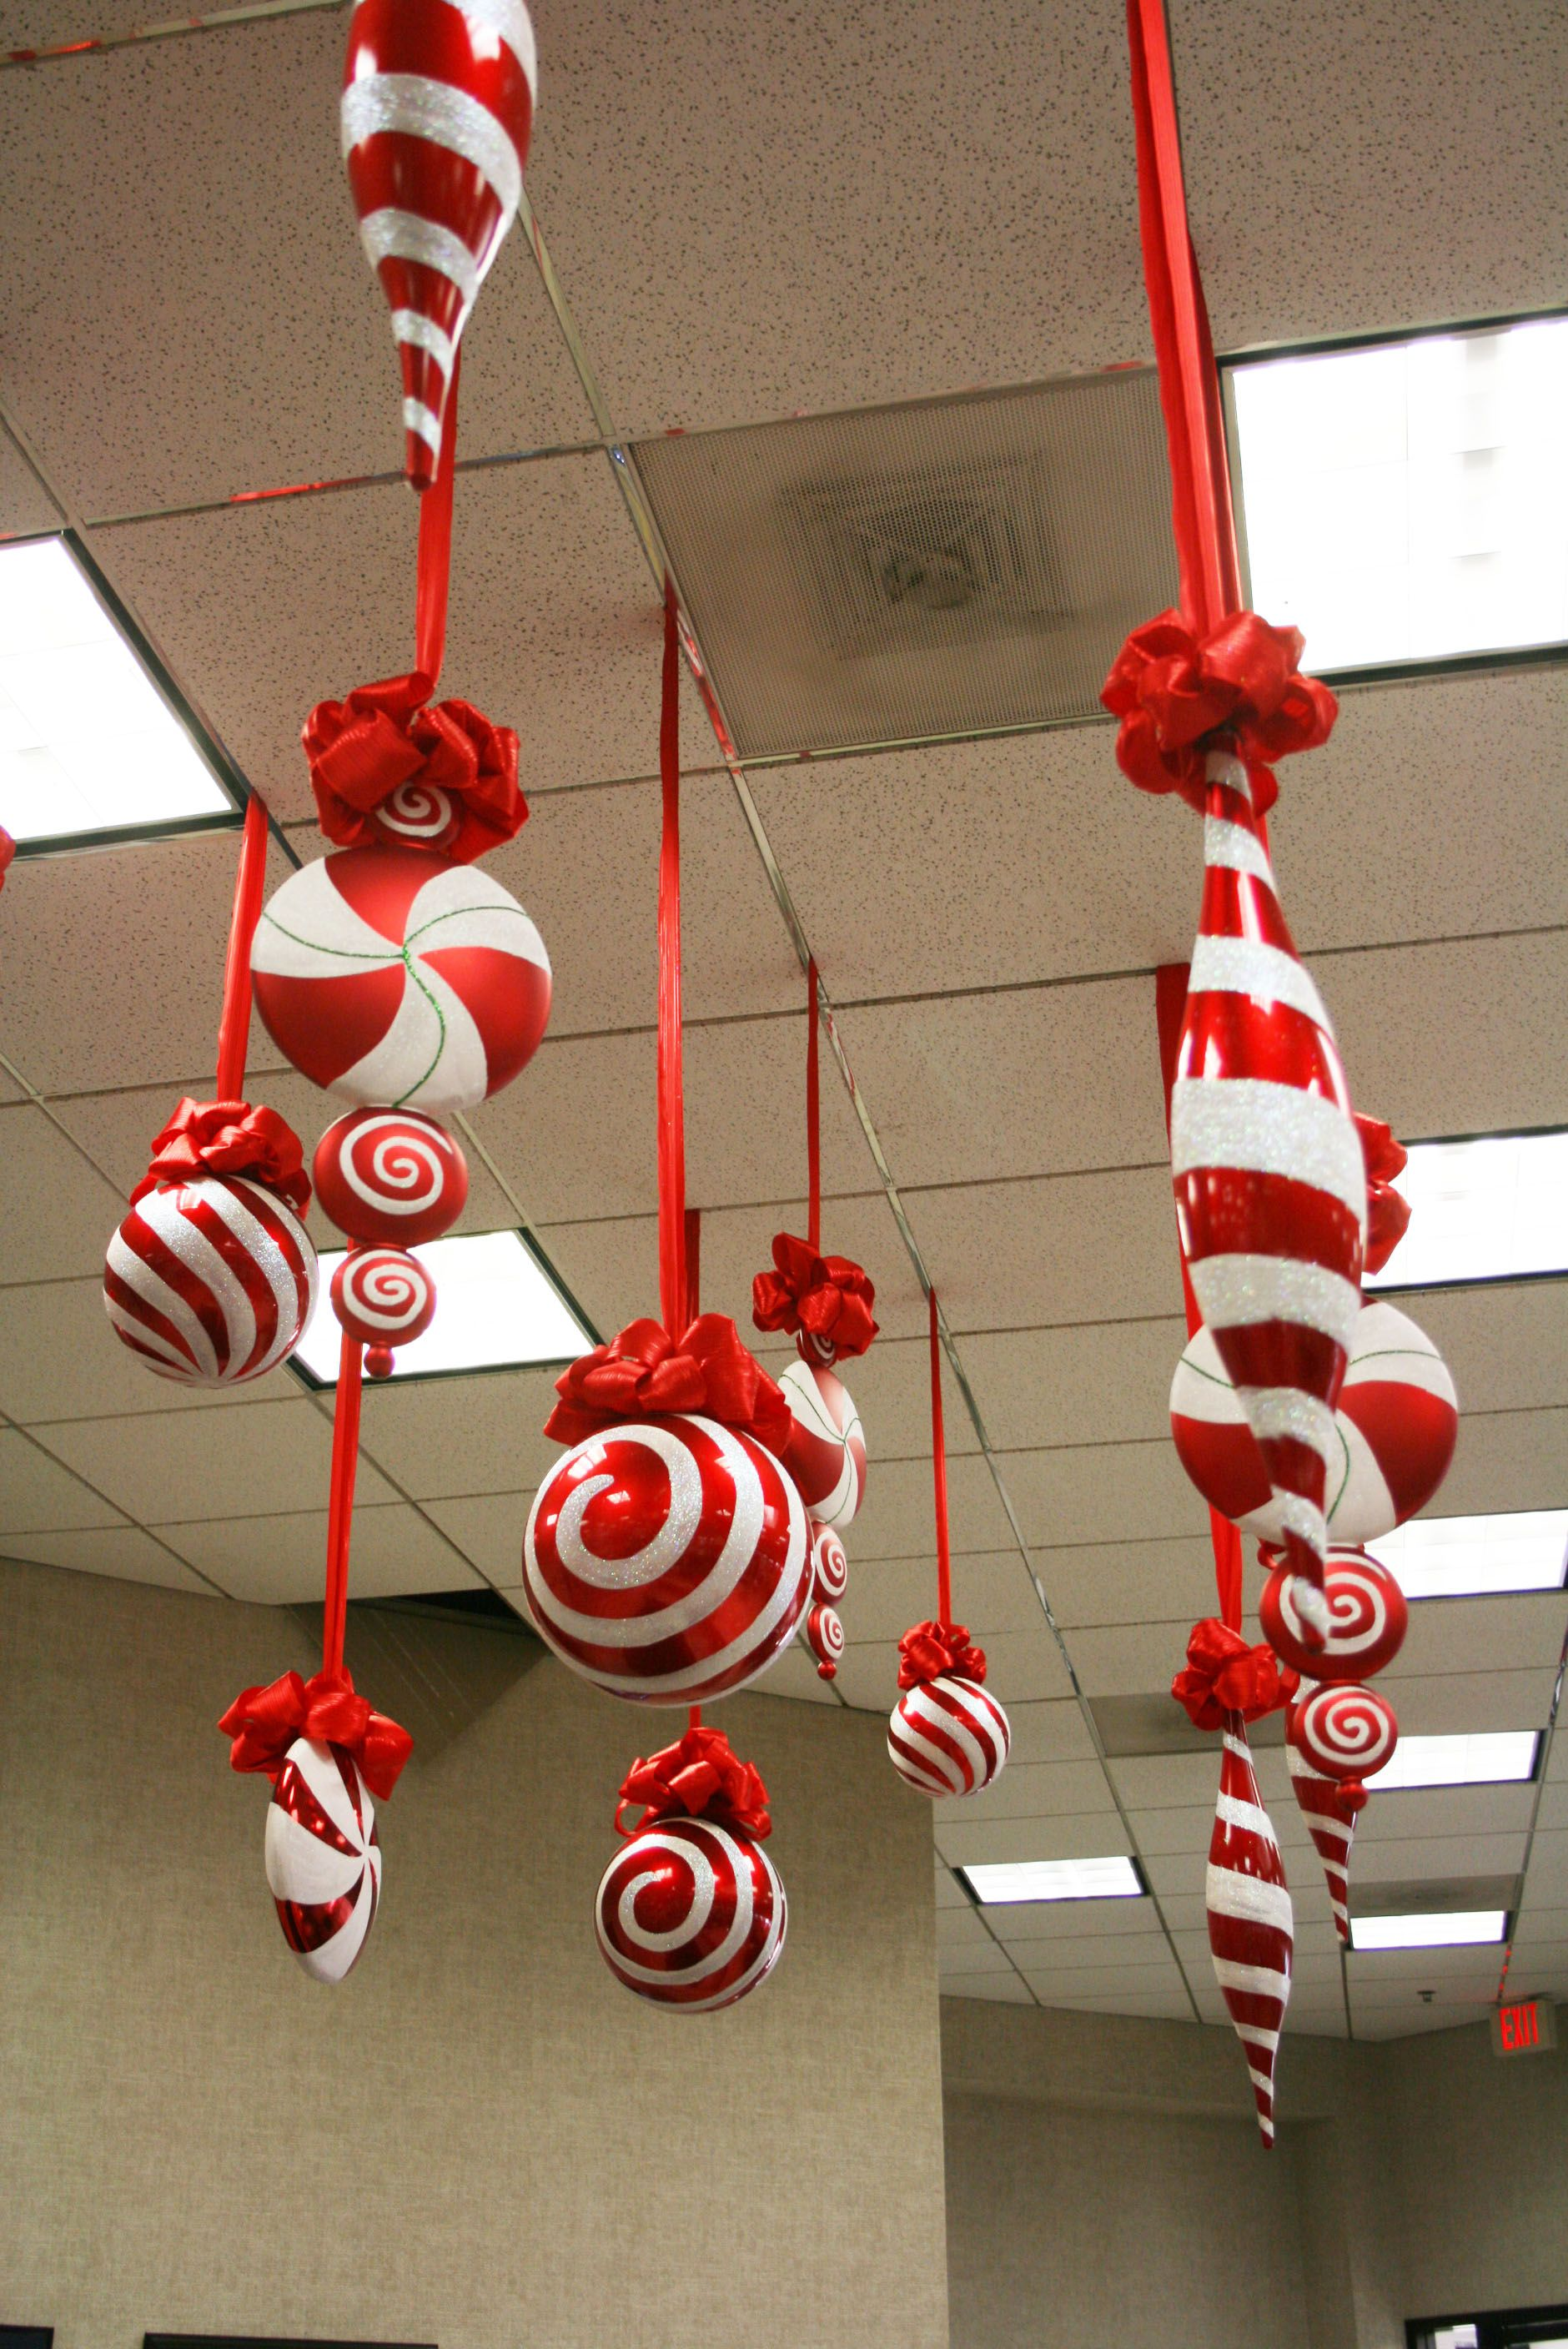 Large Candy Christmas Ornaments Hanging From The Ceiling  Christmas  Specialists  Christmas Decorators And Christmas Rentals  Pinterest   Christmas